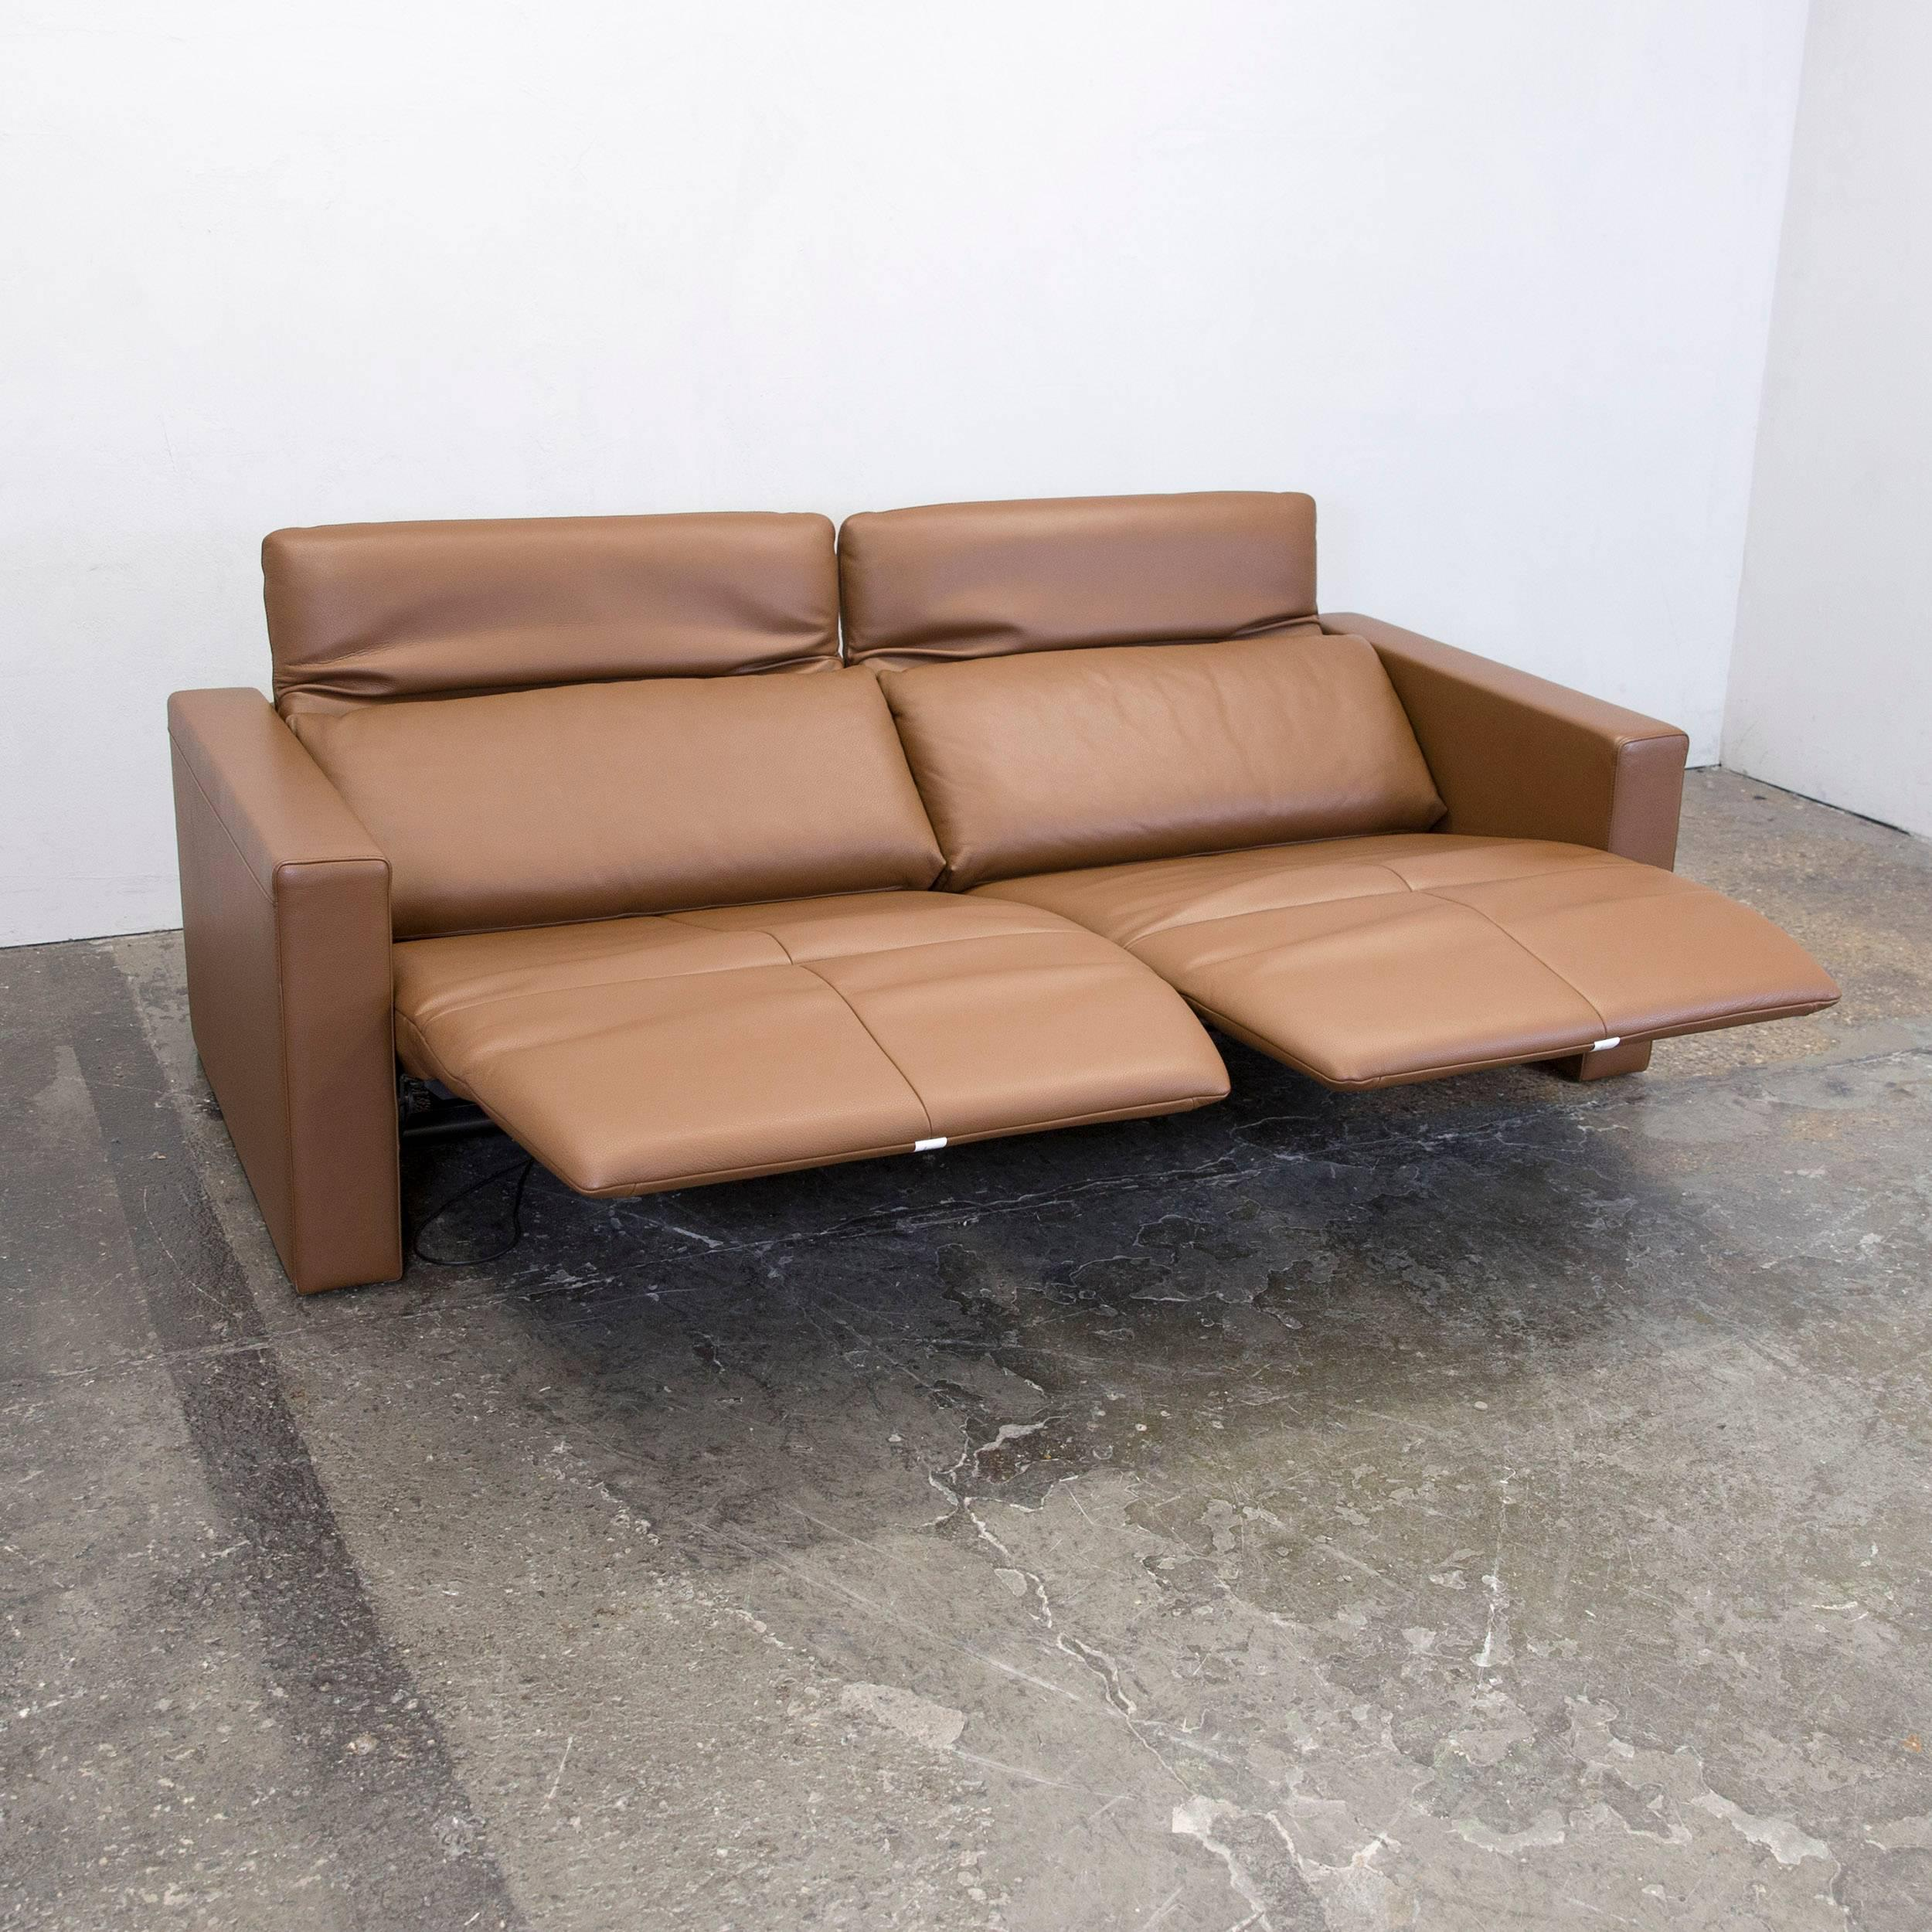 Relax Couch Elektrisch Fsm Moto Leather Couch Brown Electric Function Three Seat Sofa